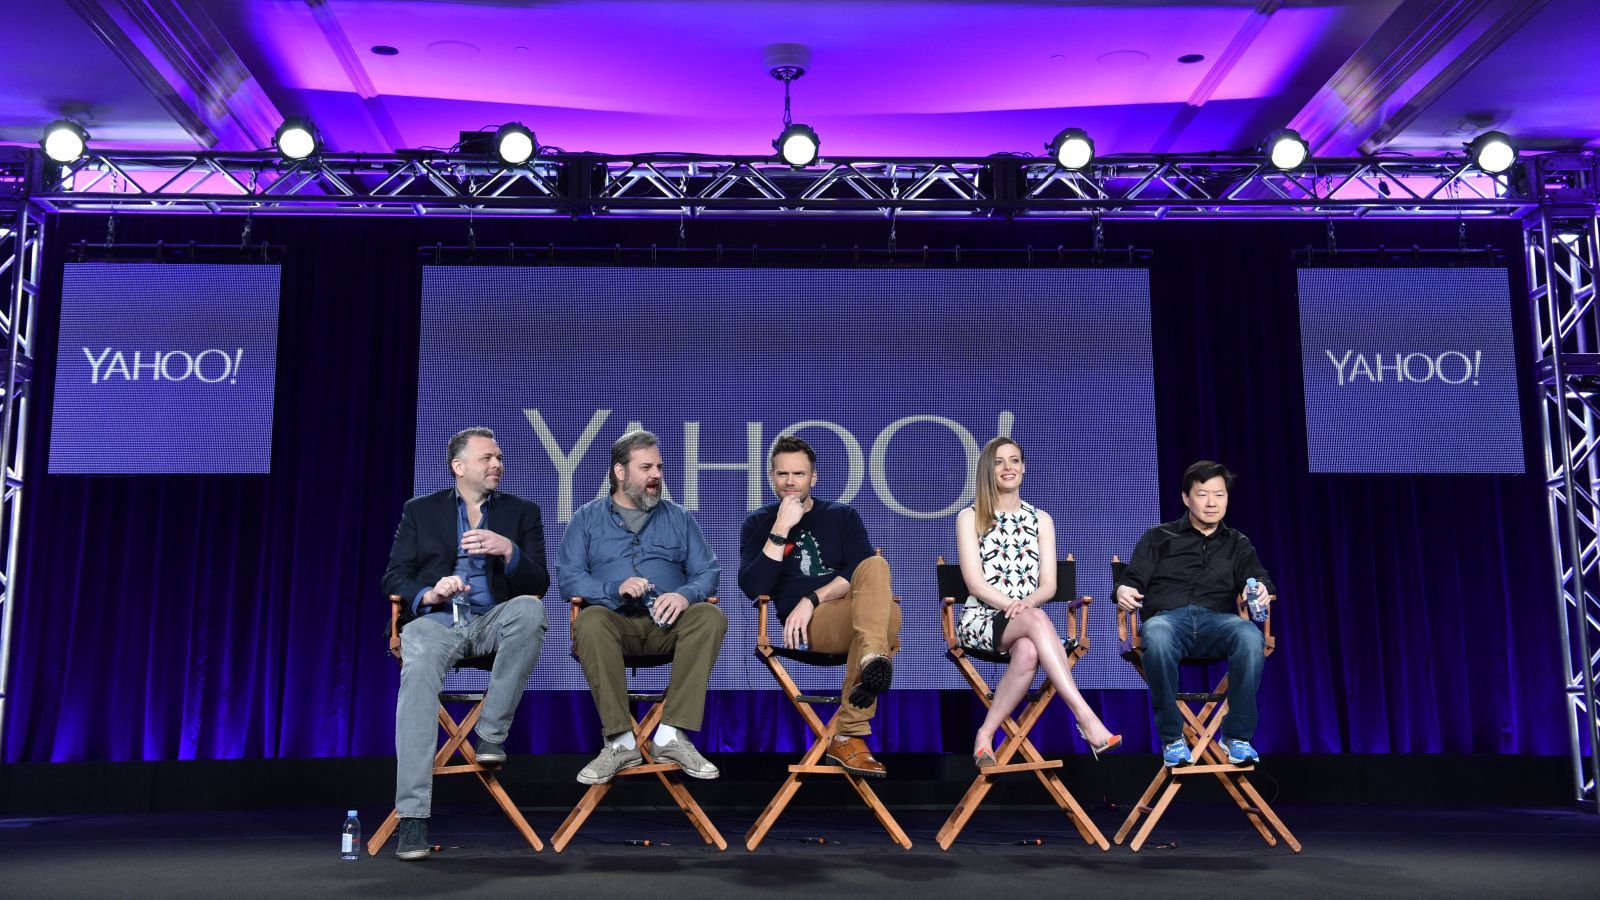 The identity crisis that led to Yahoo's demise